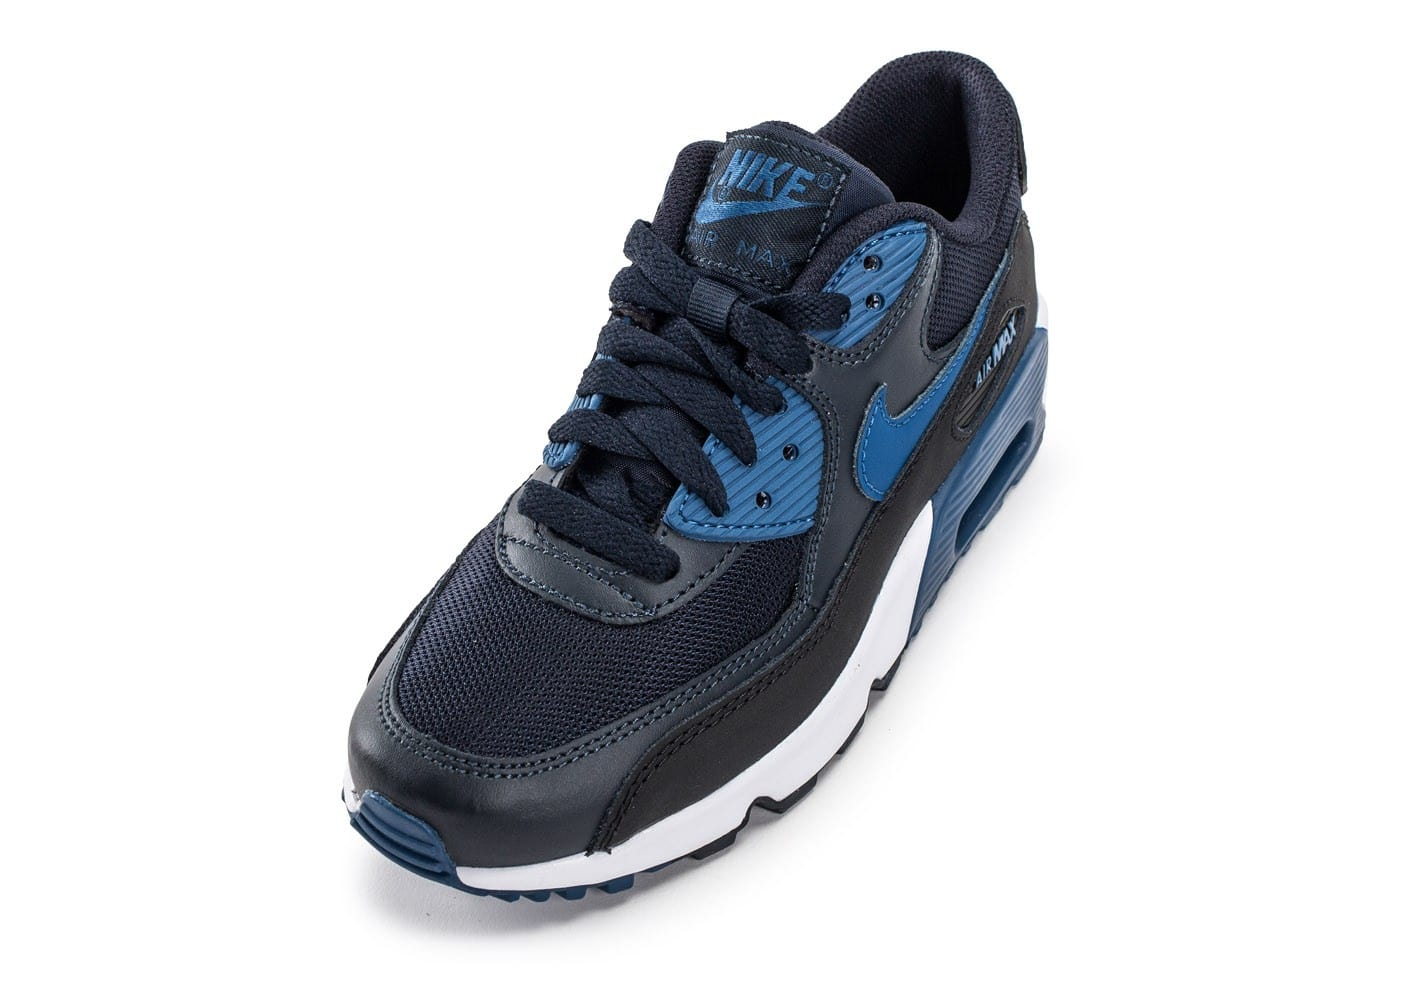 low priced 3267b 7f67c ... chaussures nike air max 90 mesh junior bleu marine vue avant